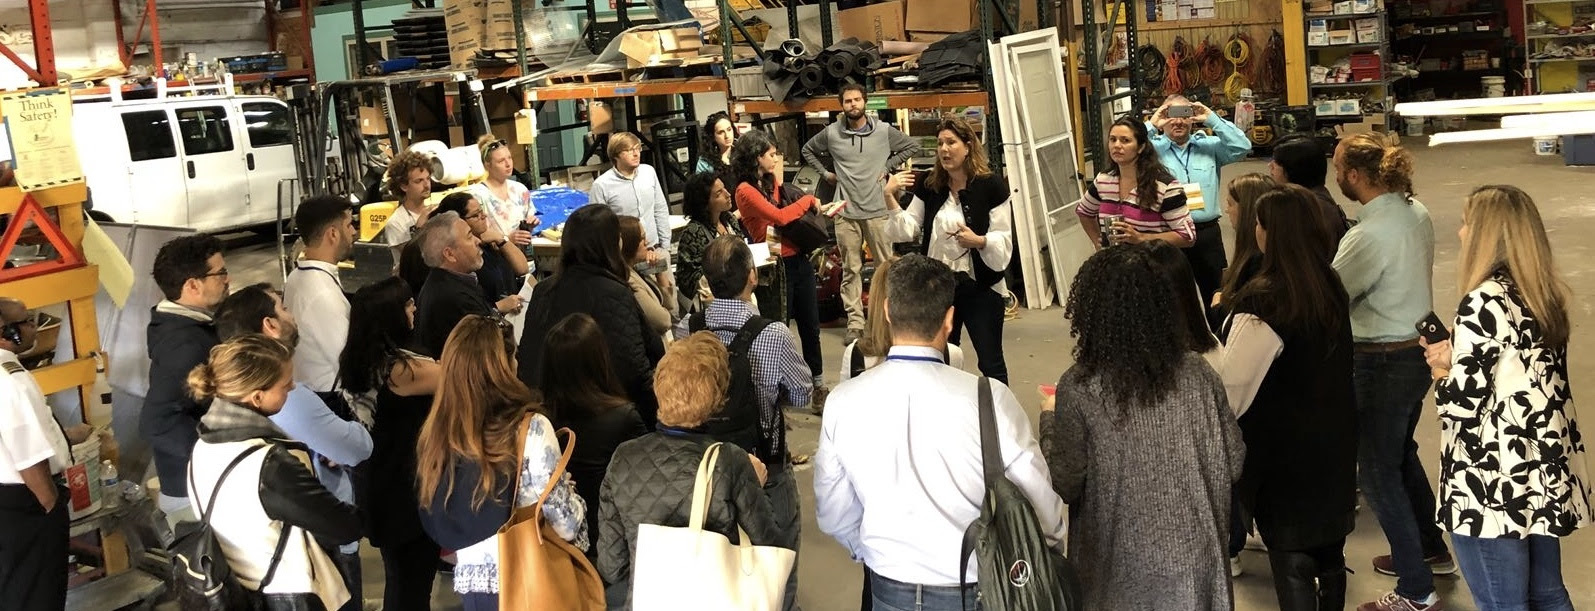 """Kristin Gisleson Palmer (center), New Orleans City Councilperson District """"C"""" and former Executive Director, Rebuilding Together New Orleans, speaks to delegation from Puerto Rico at a Preservation Resource Center warehouse."""